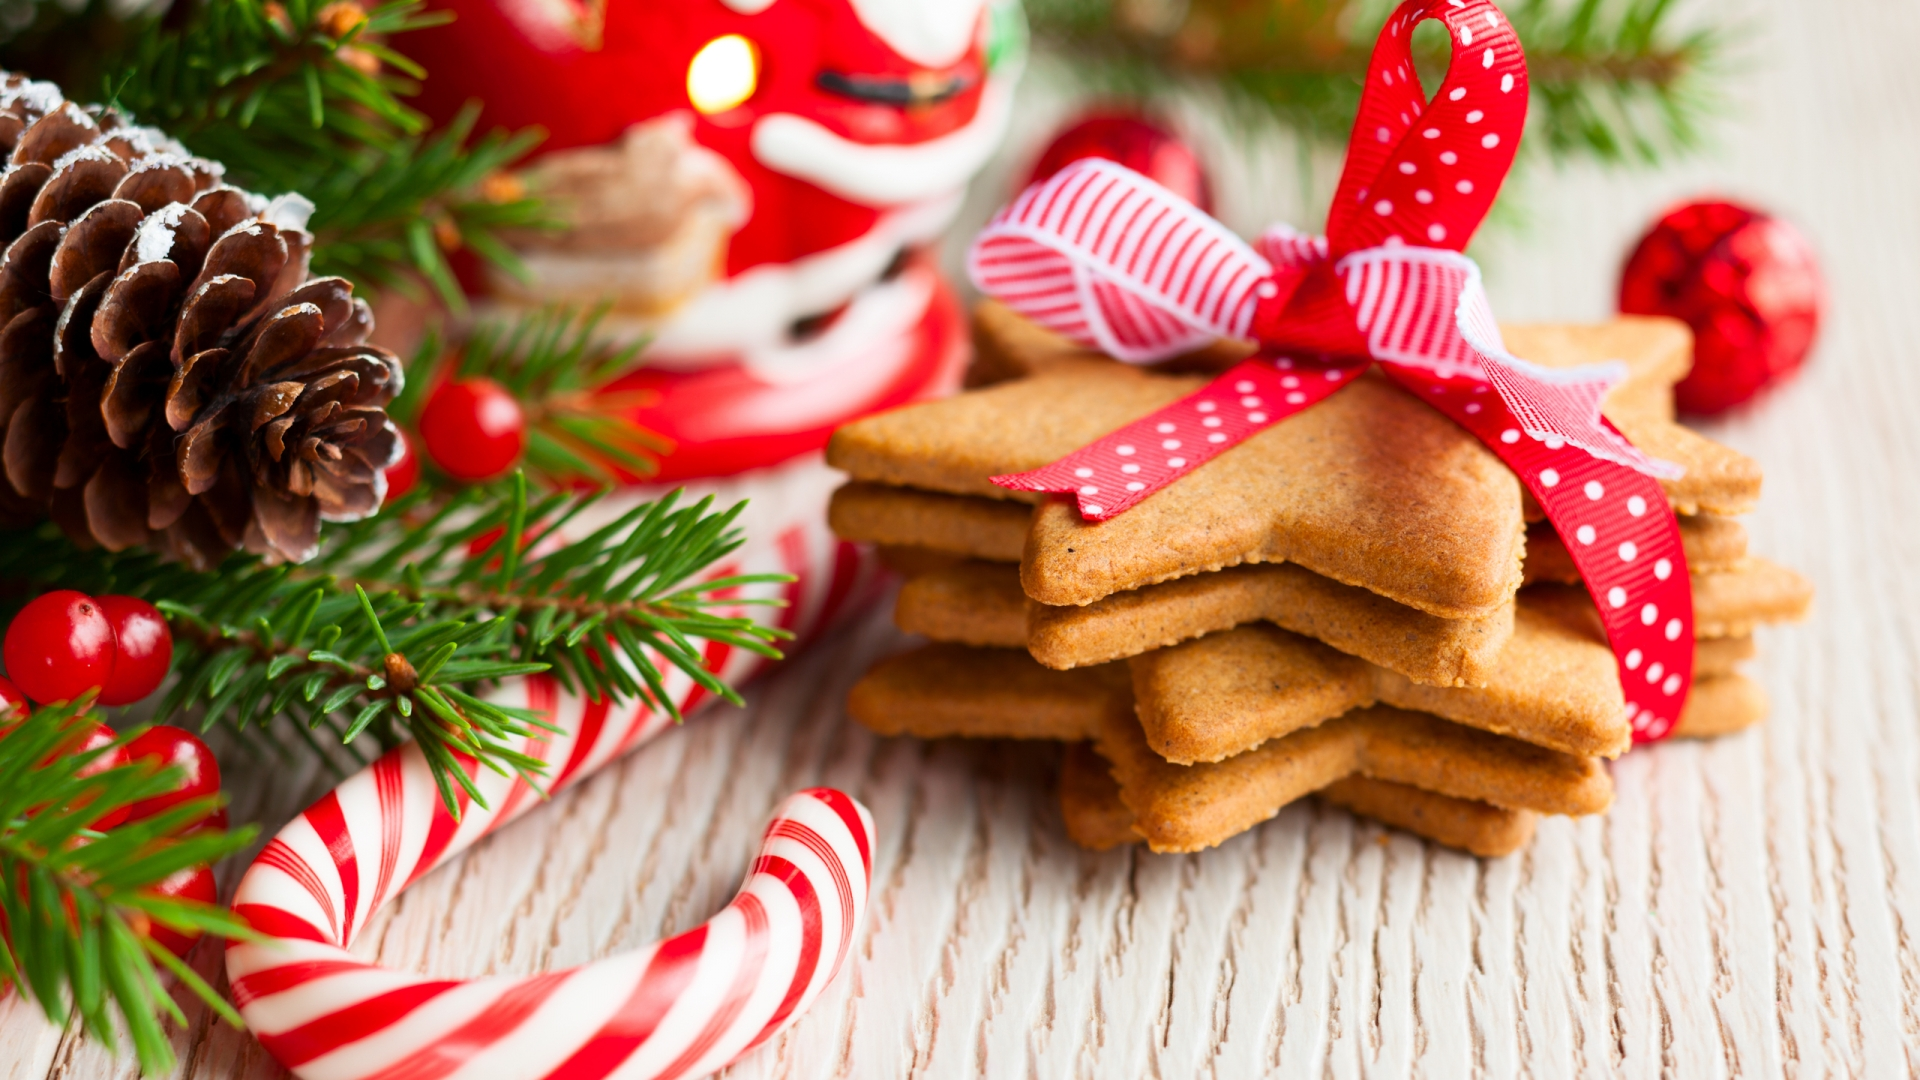 Holiday Pastries Wallpaper